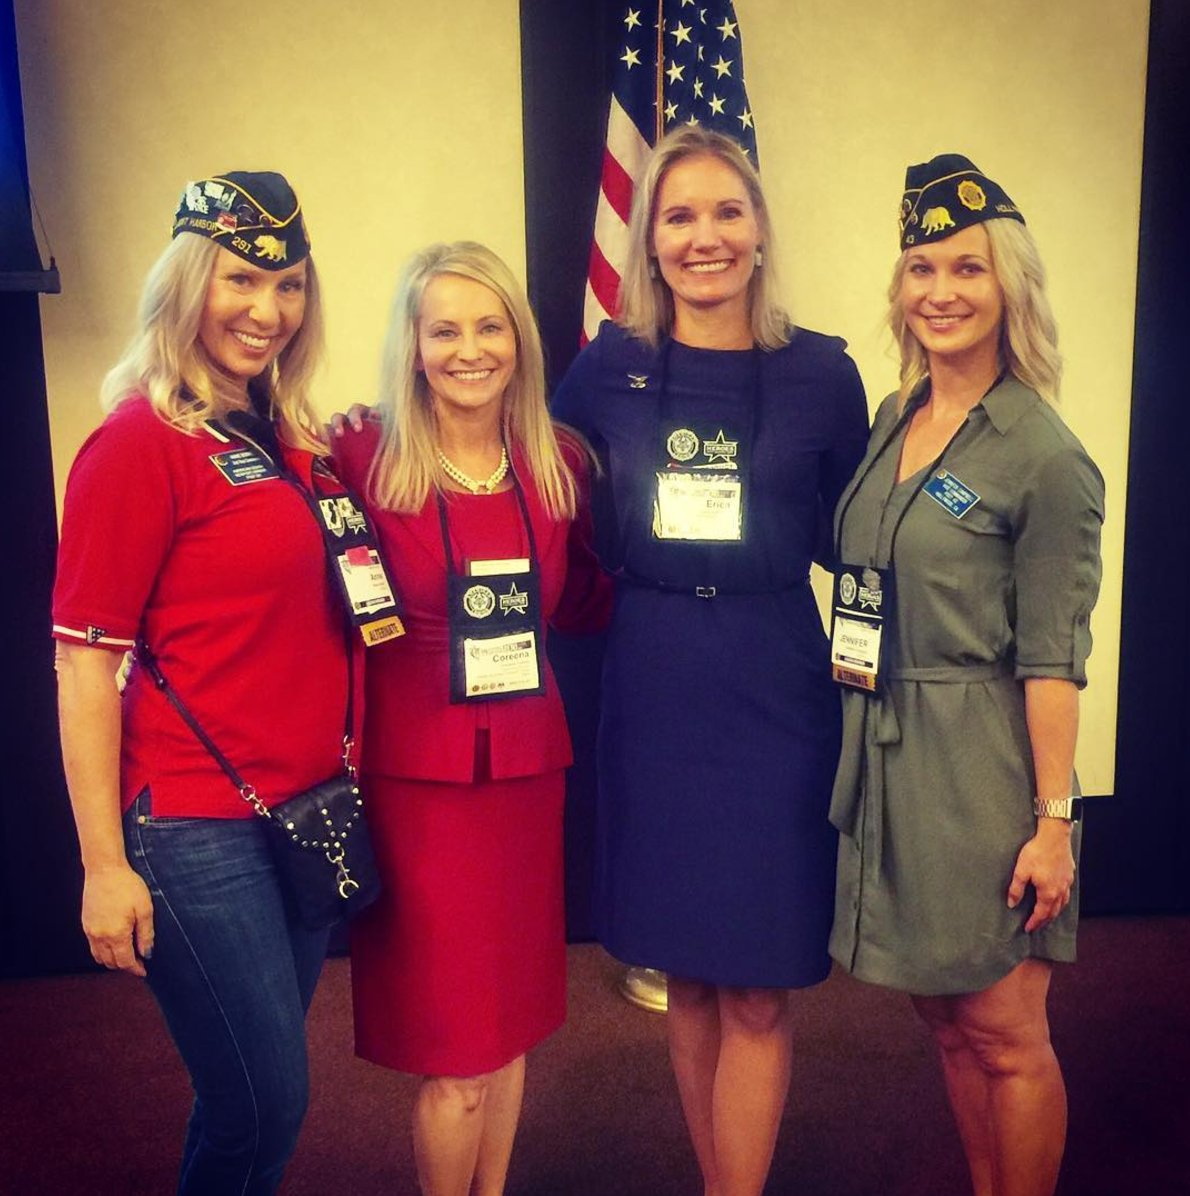 Our 2nd Vice Cmdr, @JenCampbellLA at the @AmericanLegion Conference for Women at #alconv2017 #veterans #womenvets #leaders @SBAgov #vboc<br>http://pic.twitter.com/qSzqXN5DKd